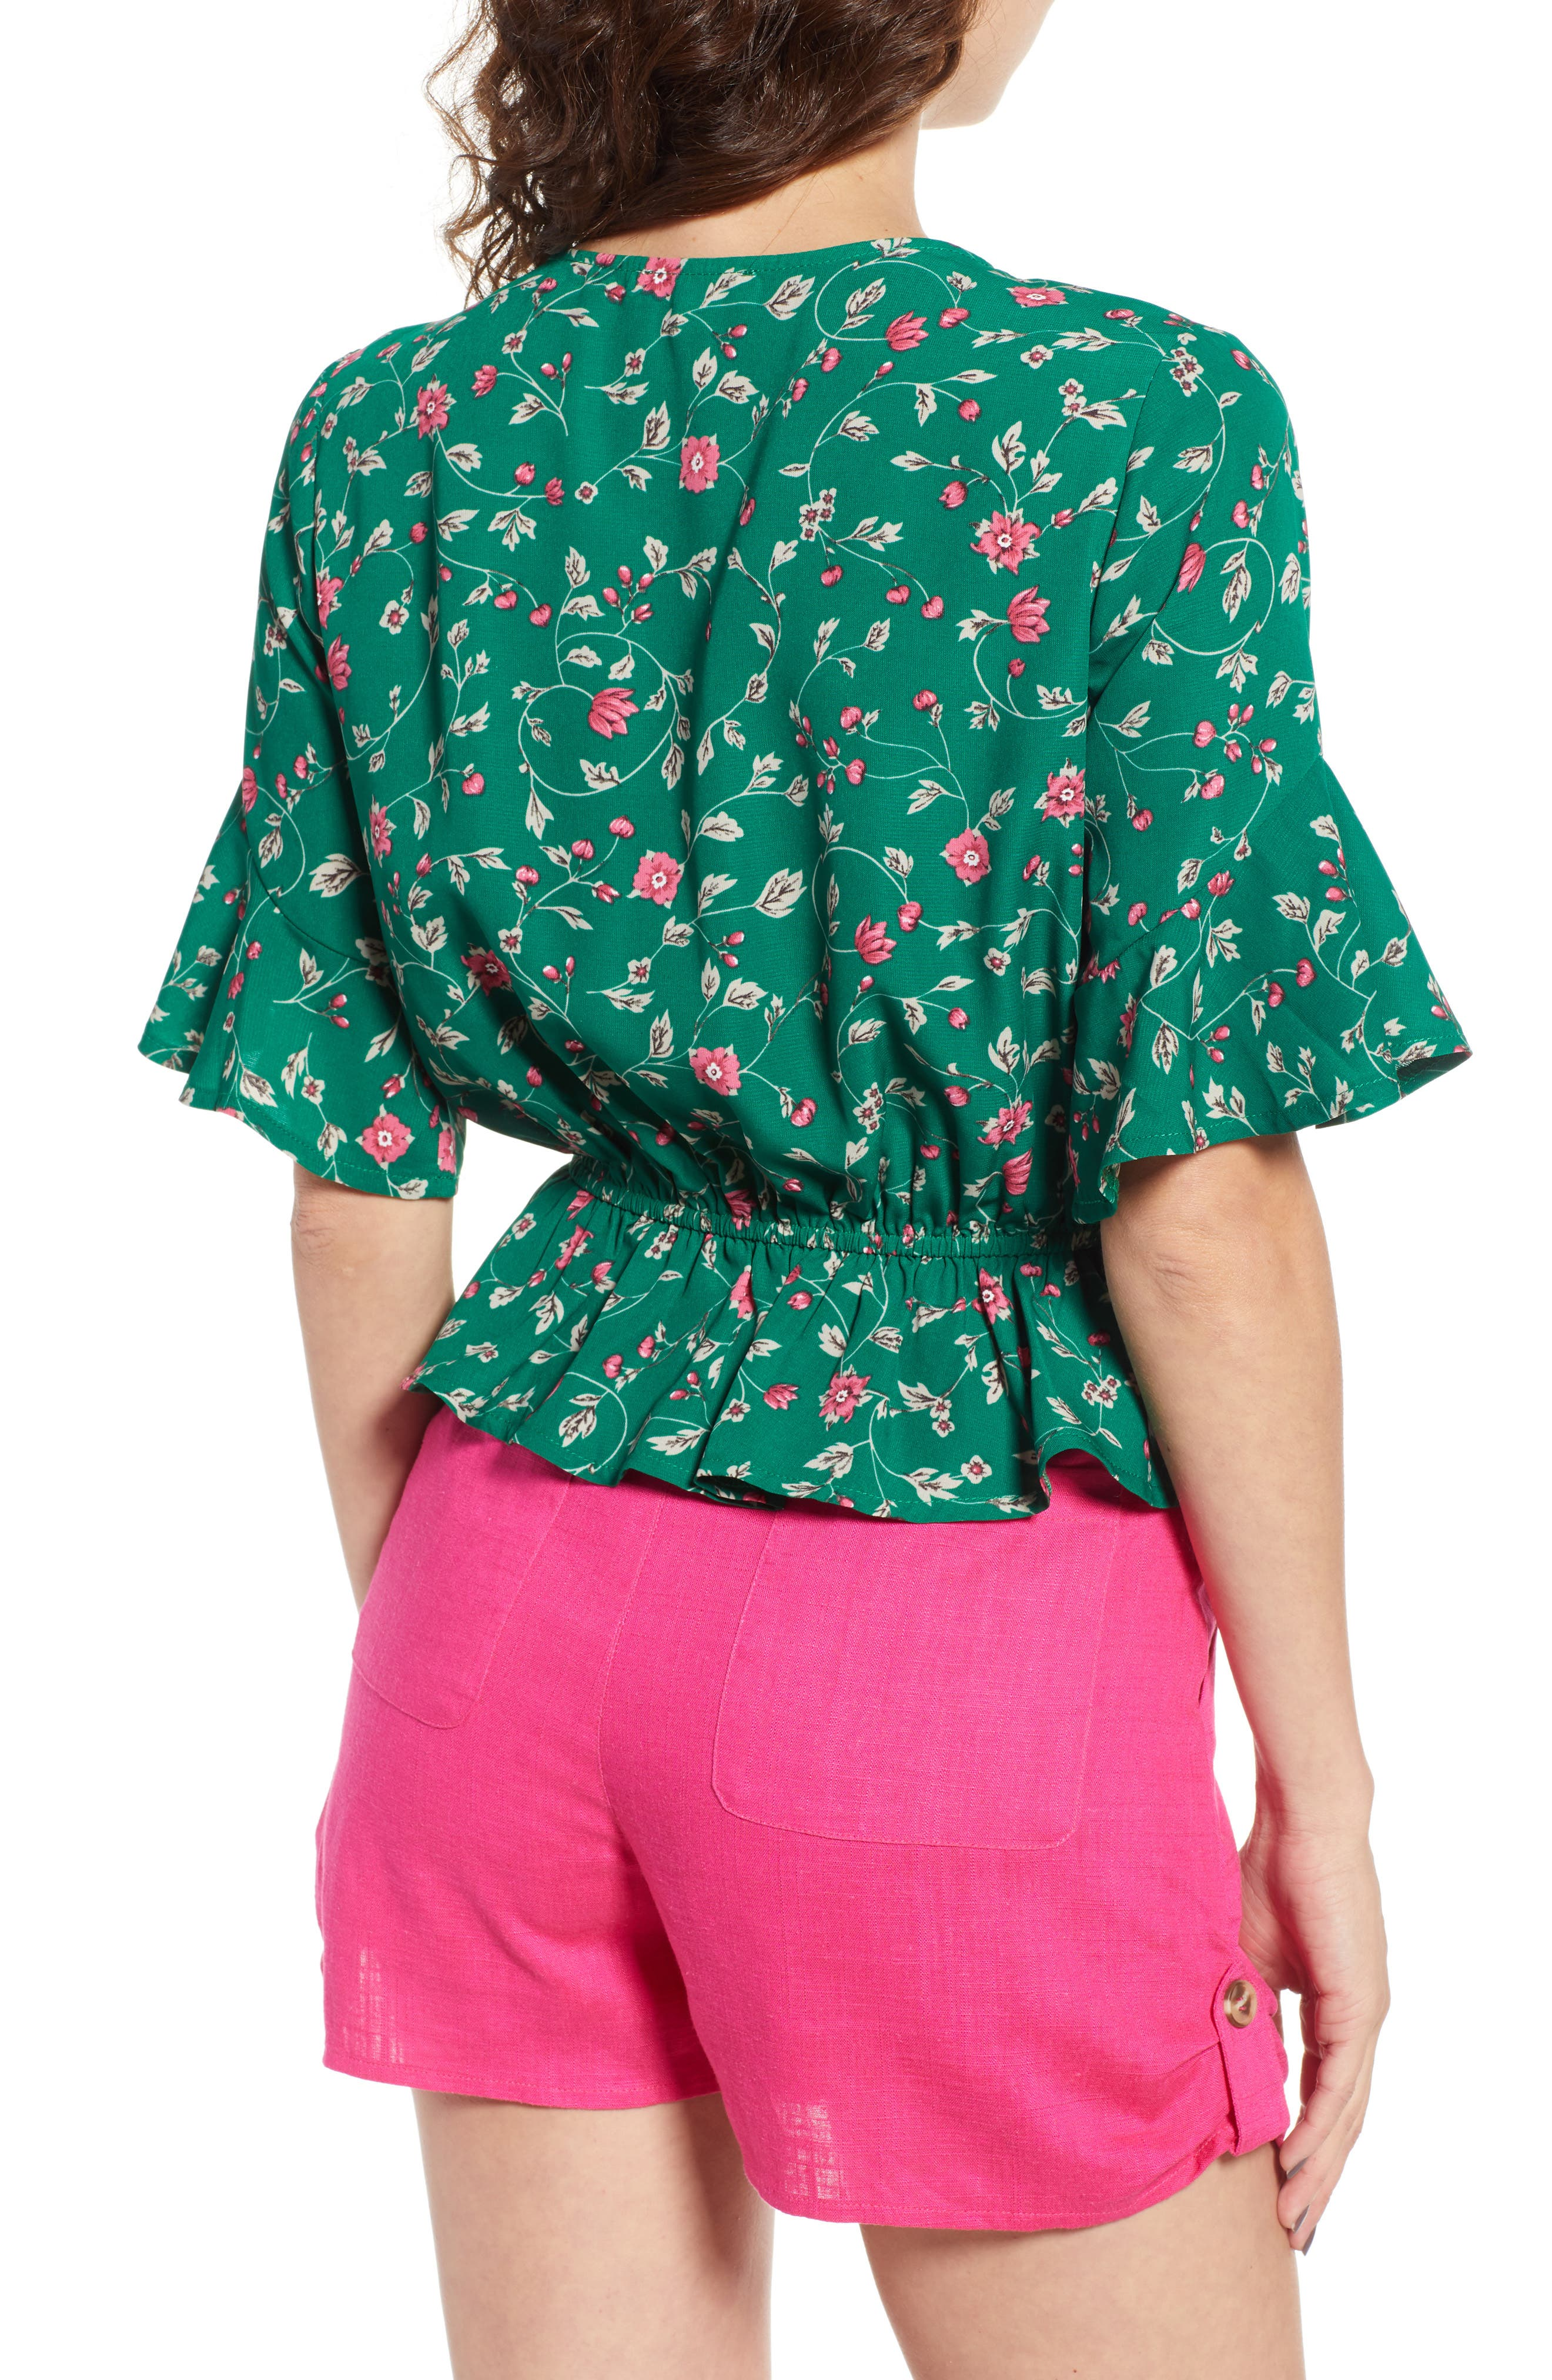 Floral Tie Front Peplum Top,                             Alternate thumbnail 3, color,                             Green/ Pink Floral